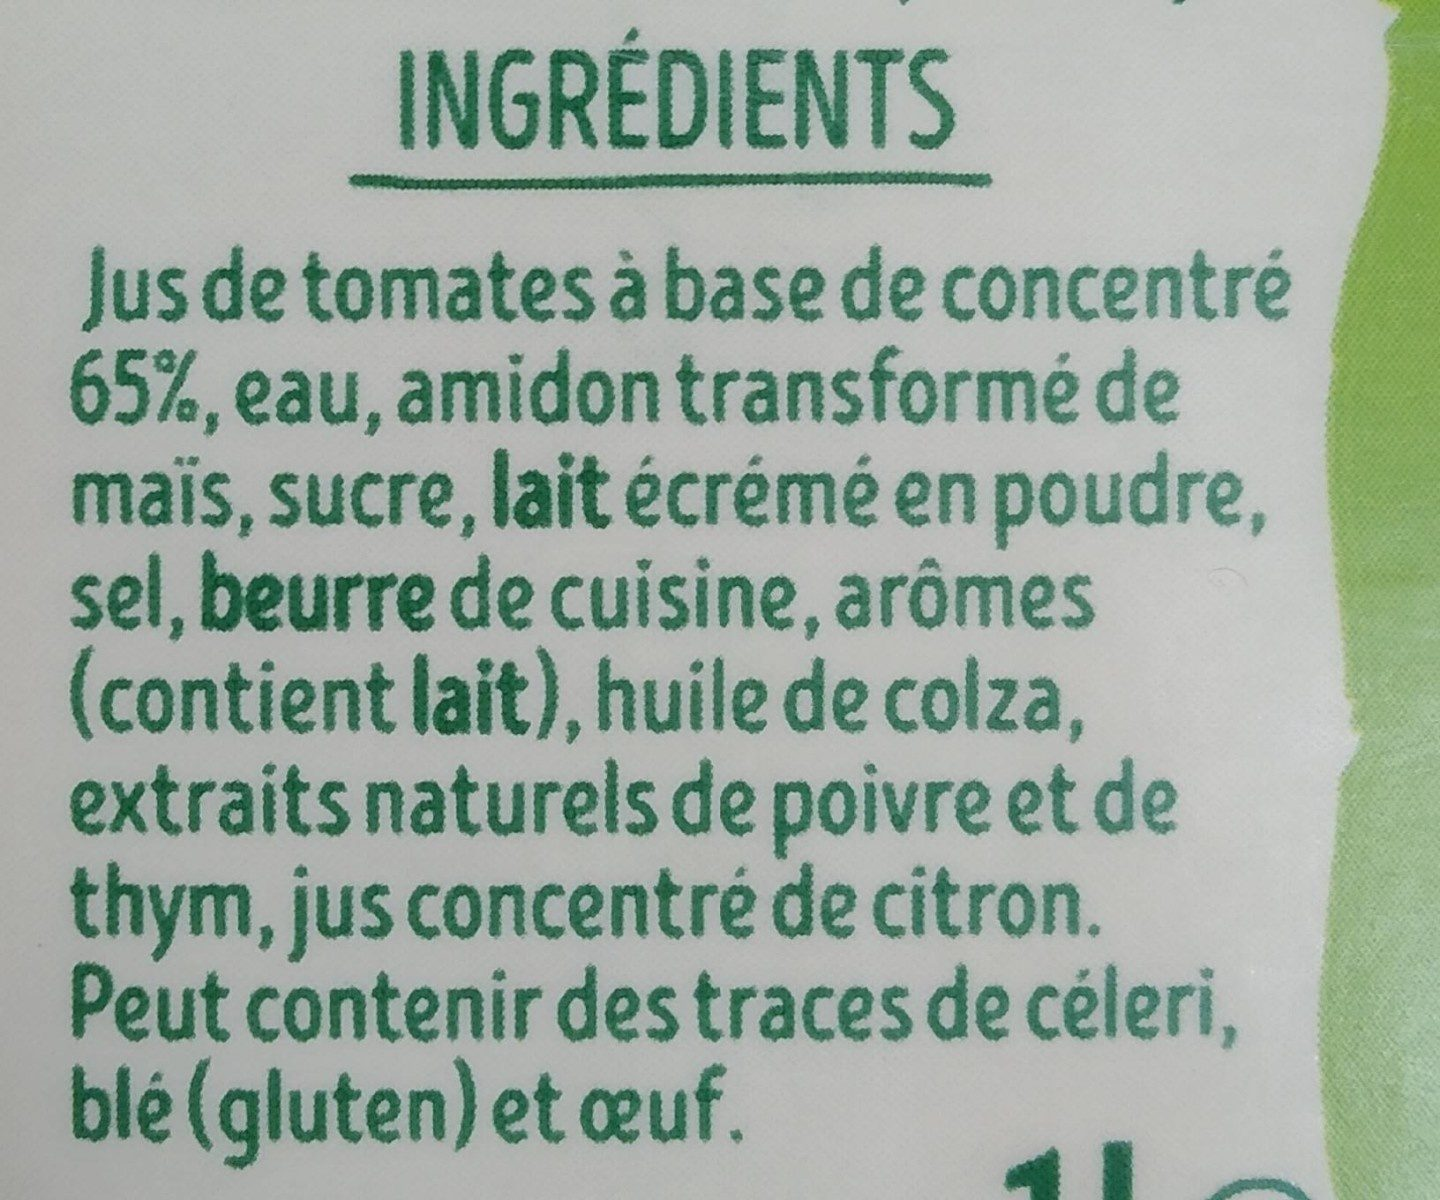 PurSoup' Velouté de Tomates - Ingredients